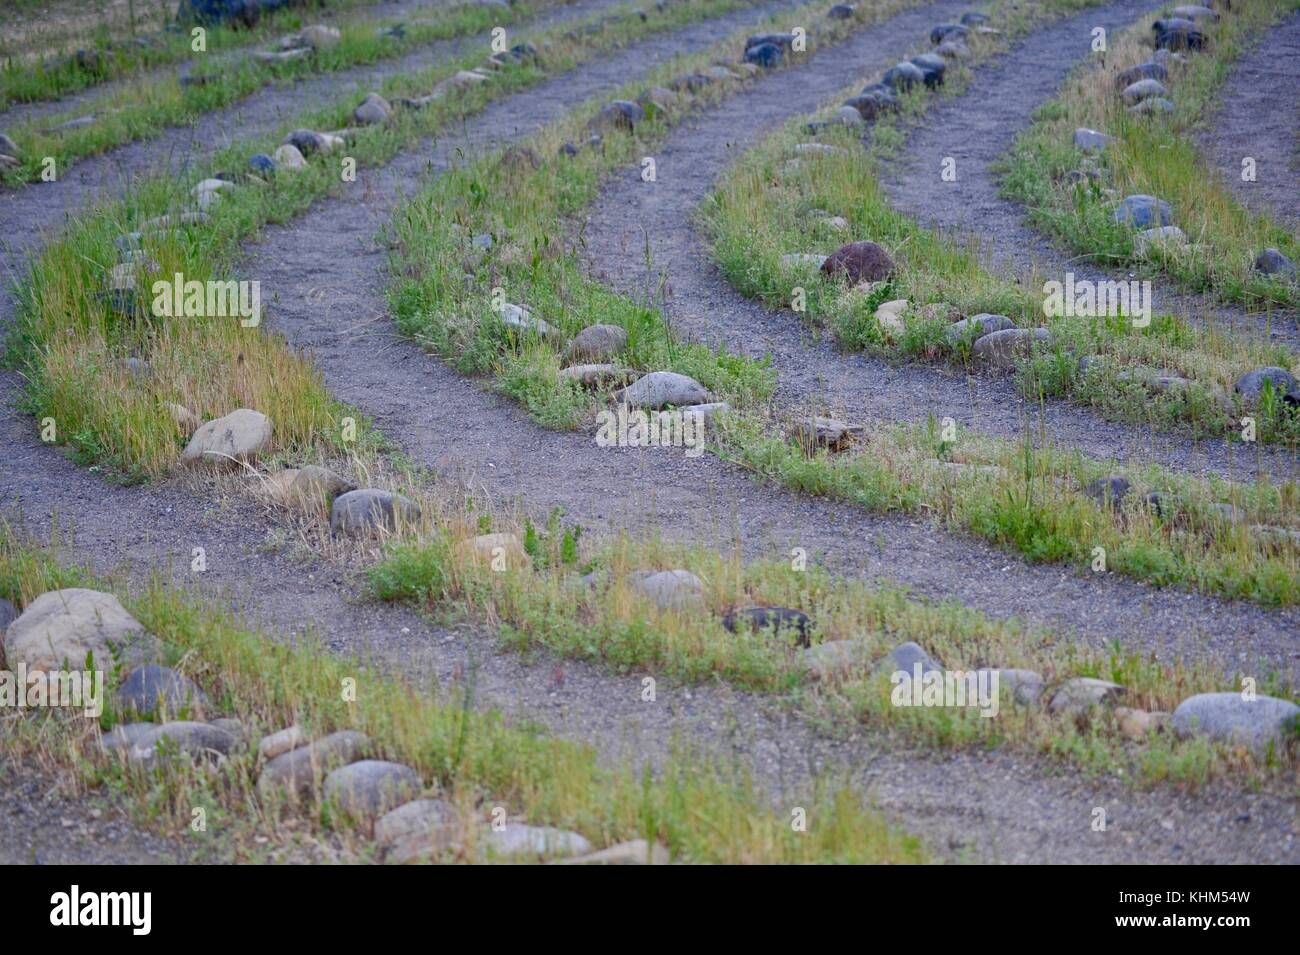 Rock and grass lined labyrinth with gravel walkway at Breitenbush Hot Springs, adjacent to Mt. Hood National Forest - Stock Image